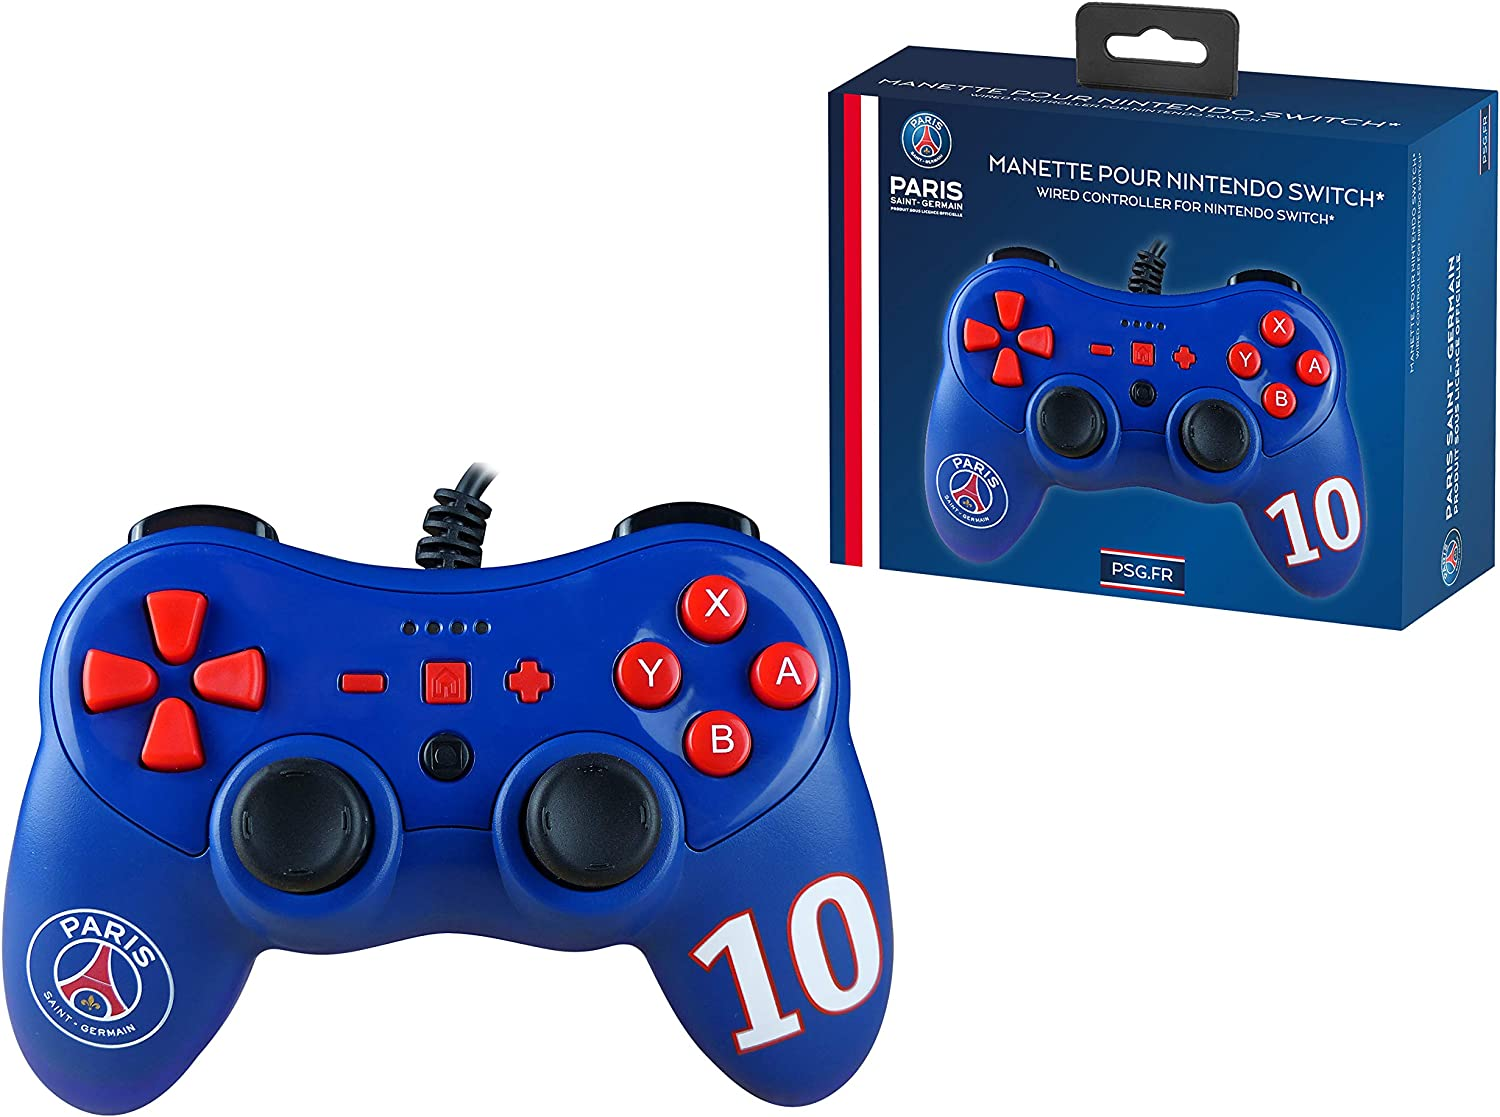 Mando controller para Nintendo Switch, con cable, Paris Saint Germain: Amazon.es: Videojuegos